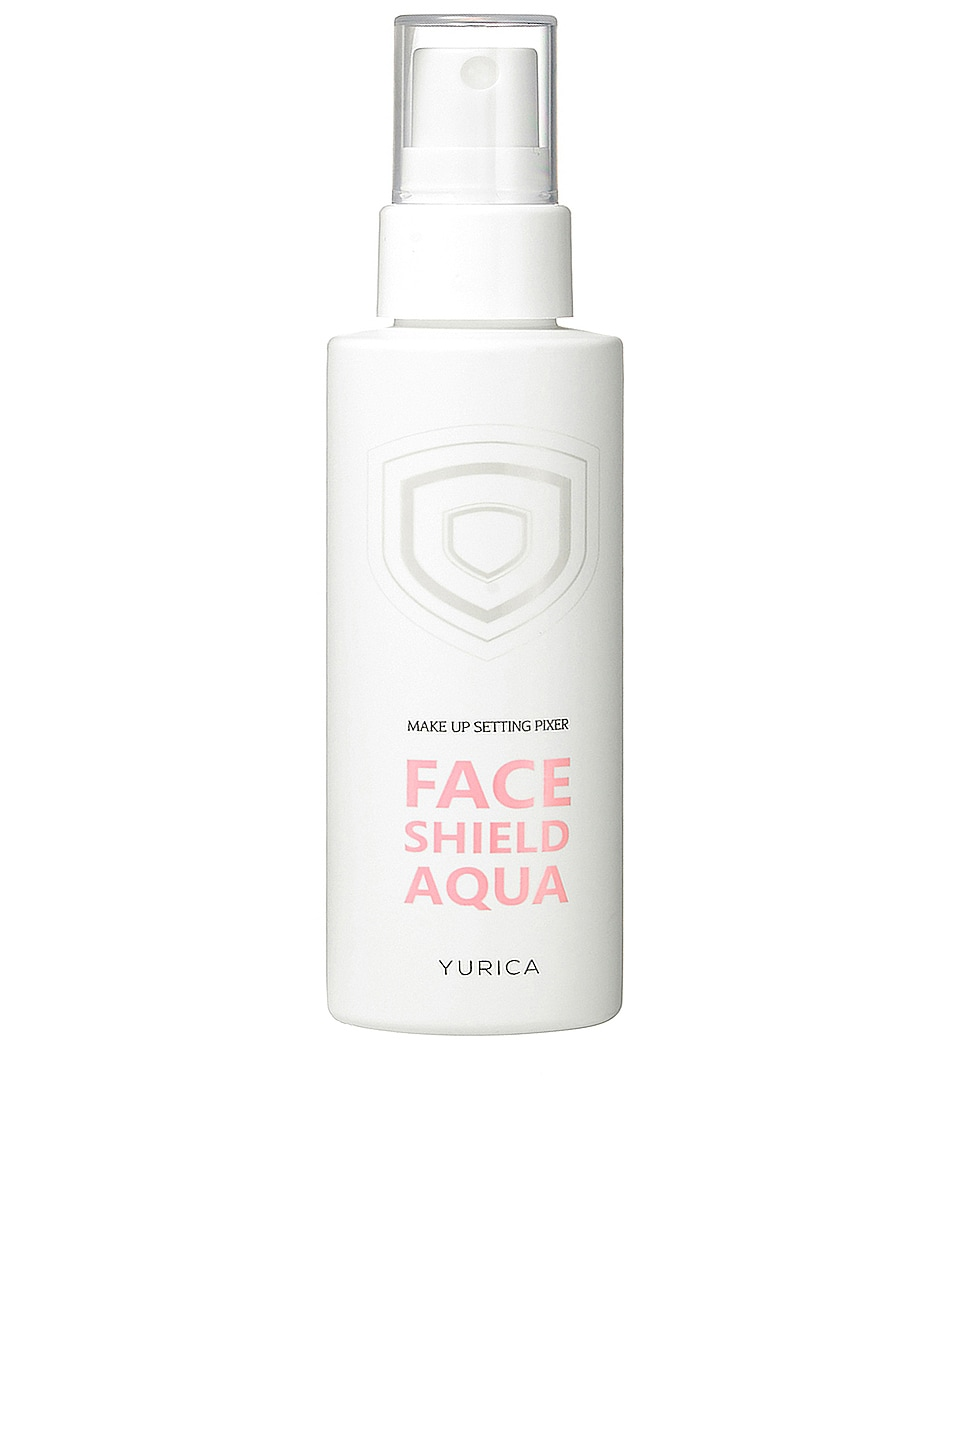 YURICA Face Shield Aqua